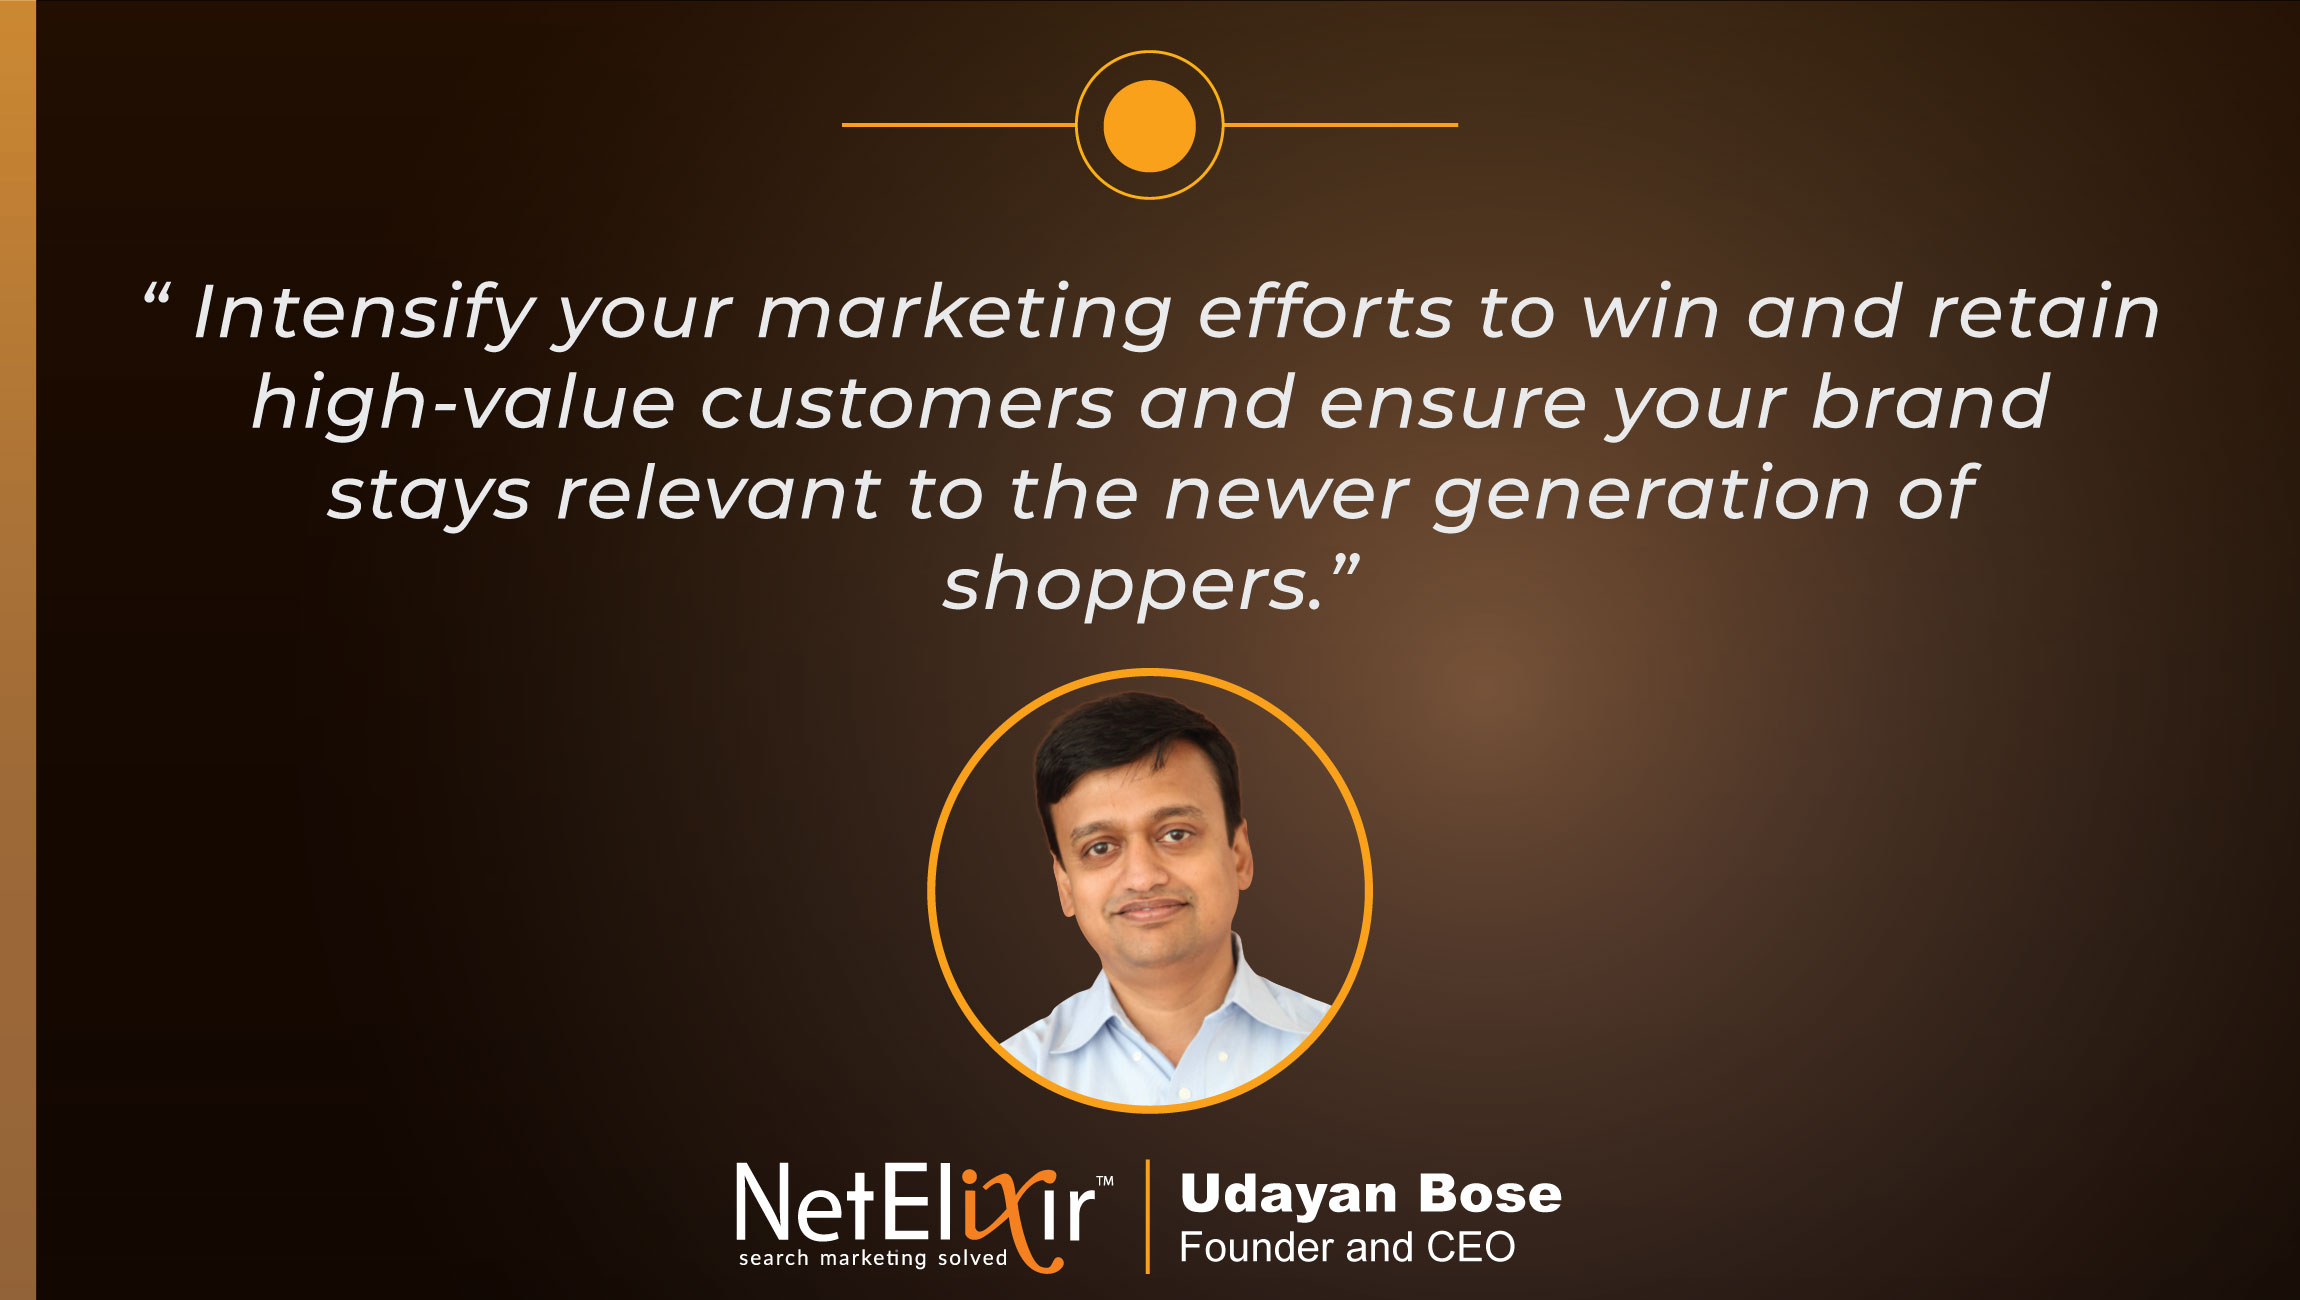 Interview with Udayan Bose, Founder and CEO at NetElixir